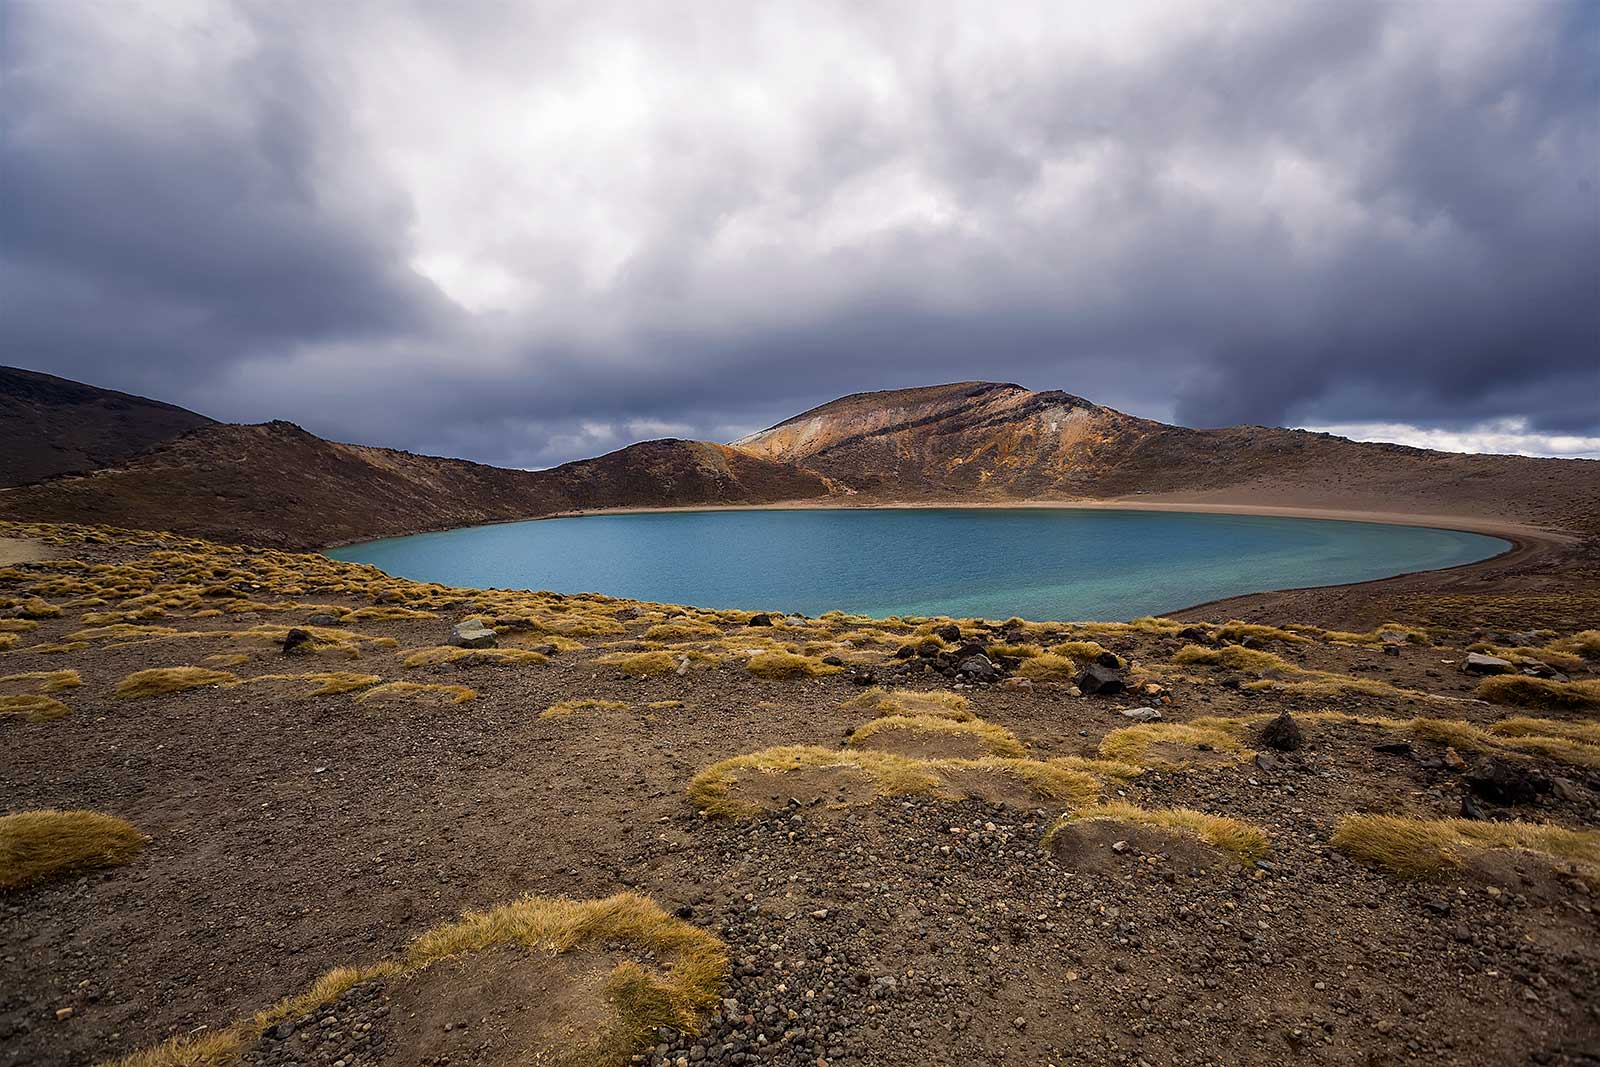 Blue Lake on the Tongariro Alpine Crossing, New Zealand.